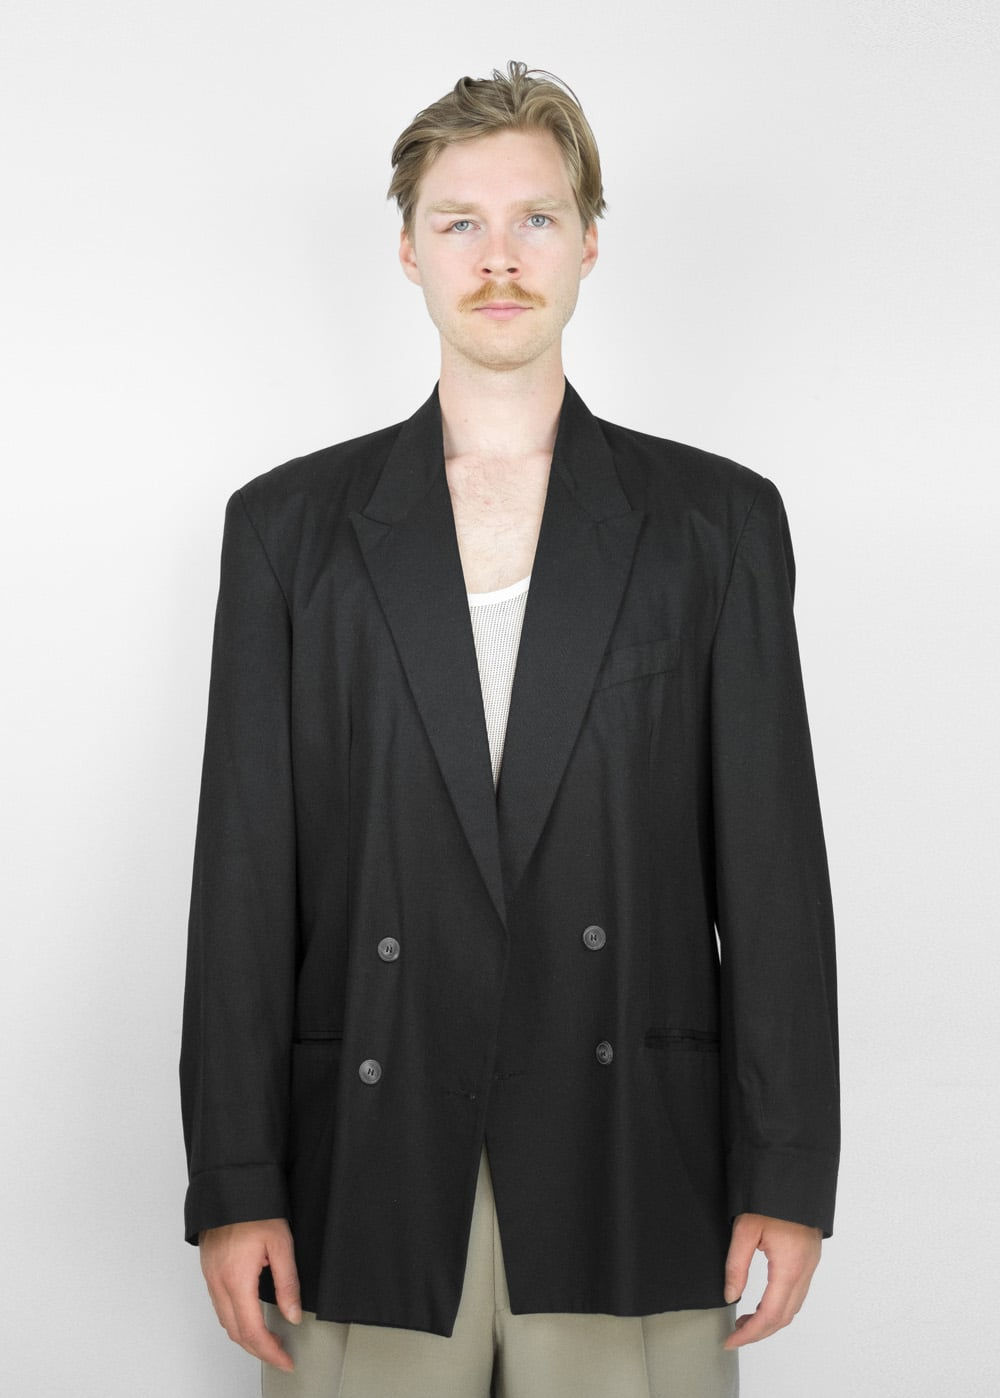 90s Black Suit Jacket 135